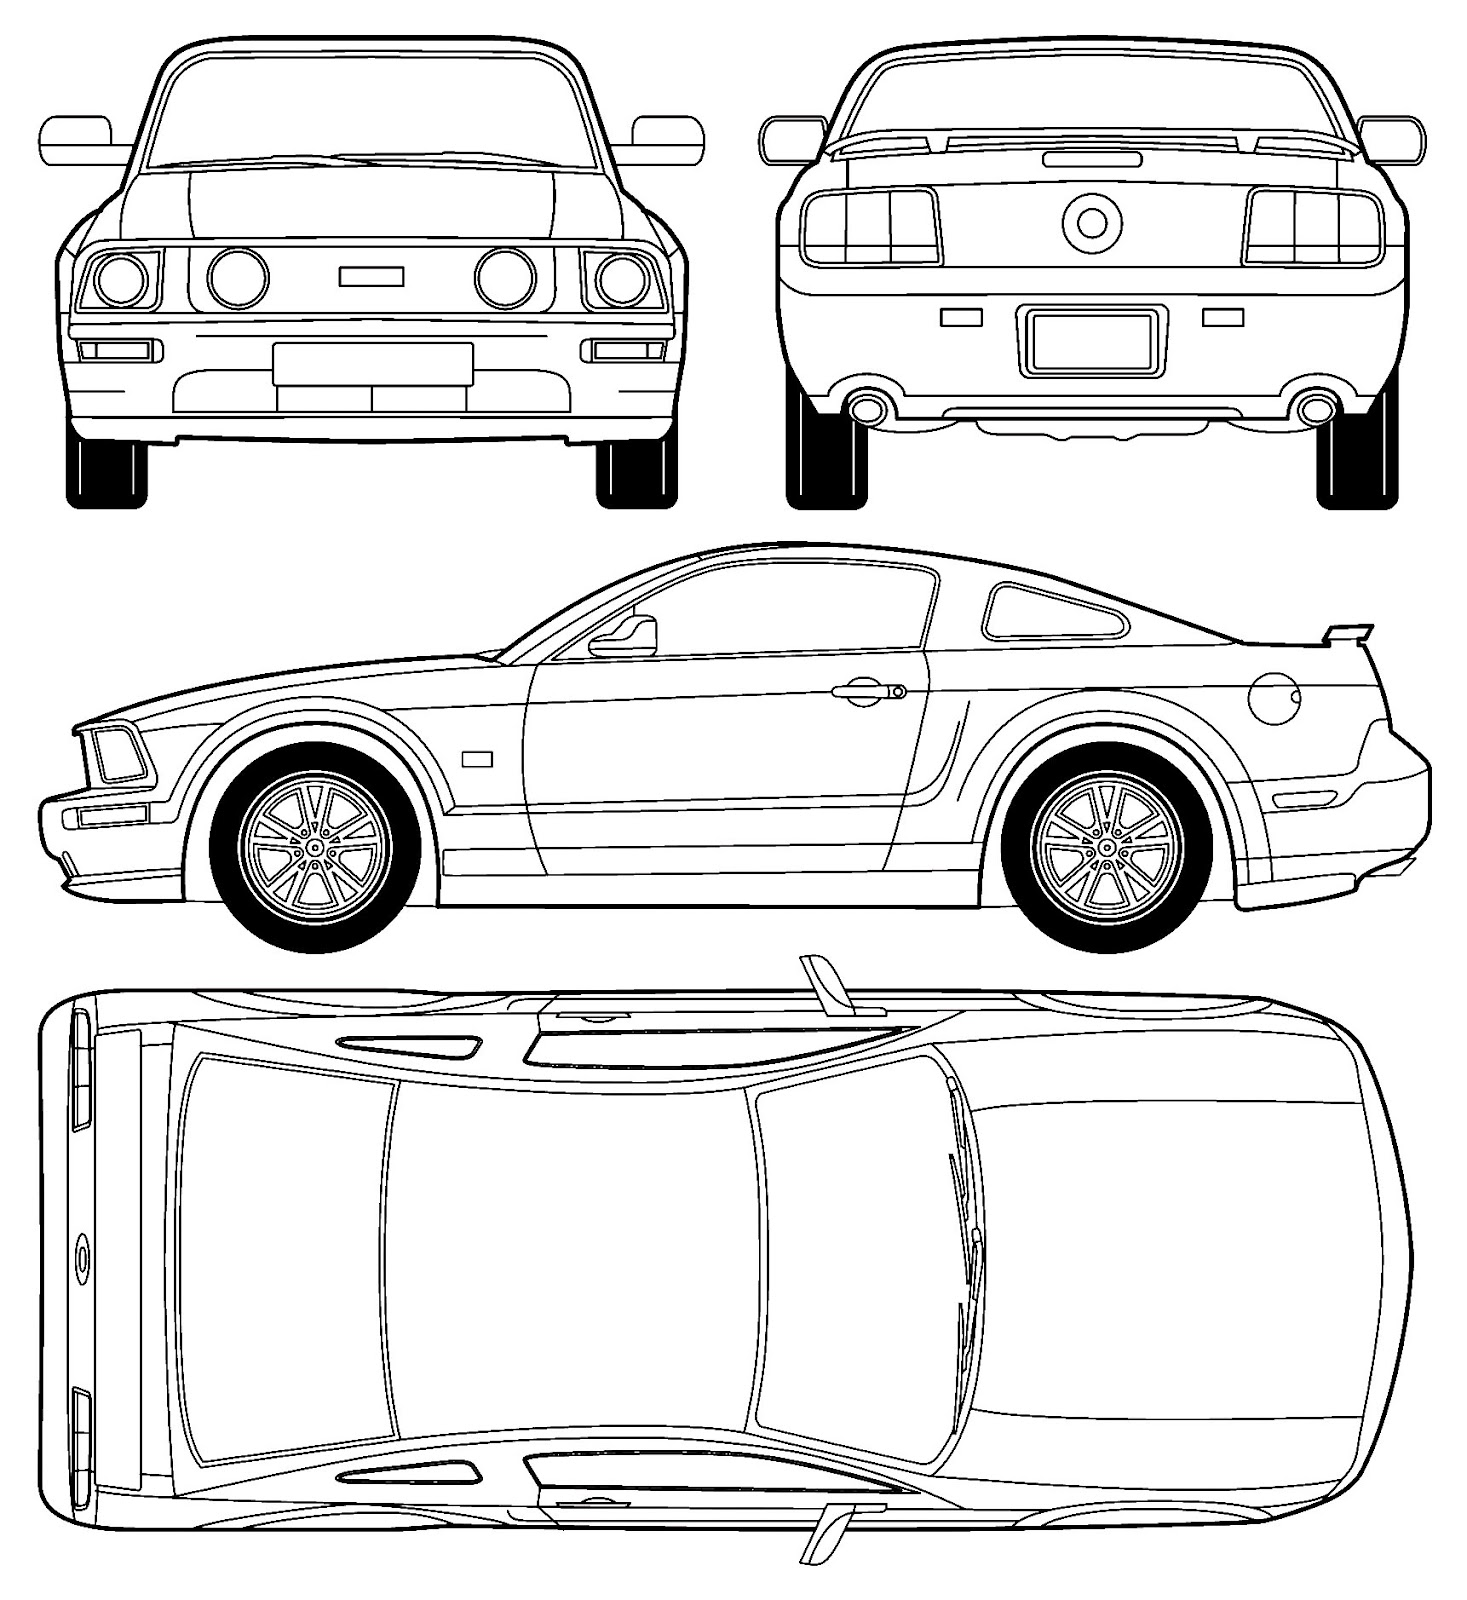 3d Auto Club Blueprints